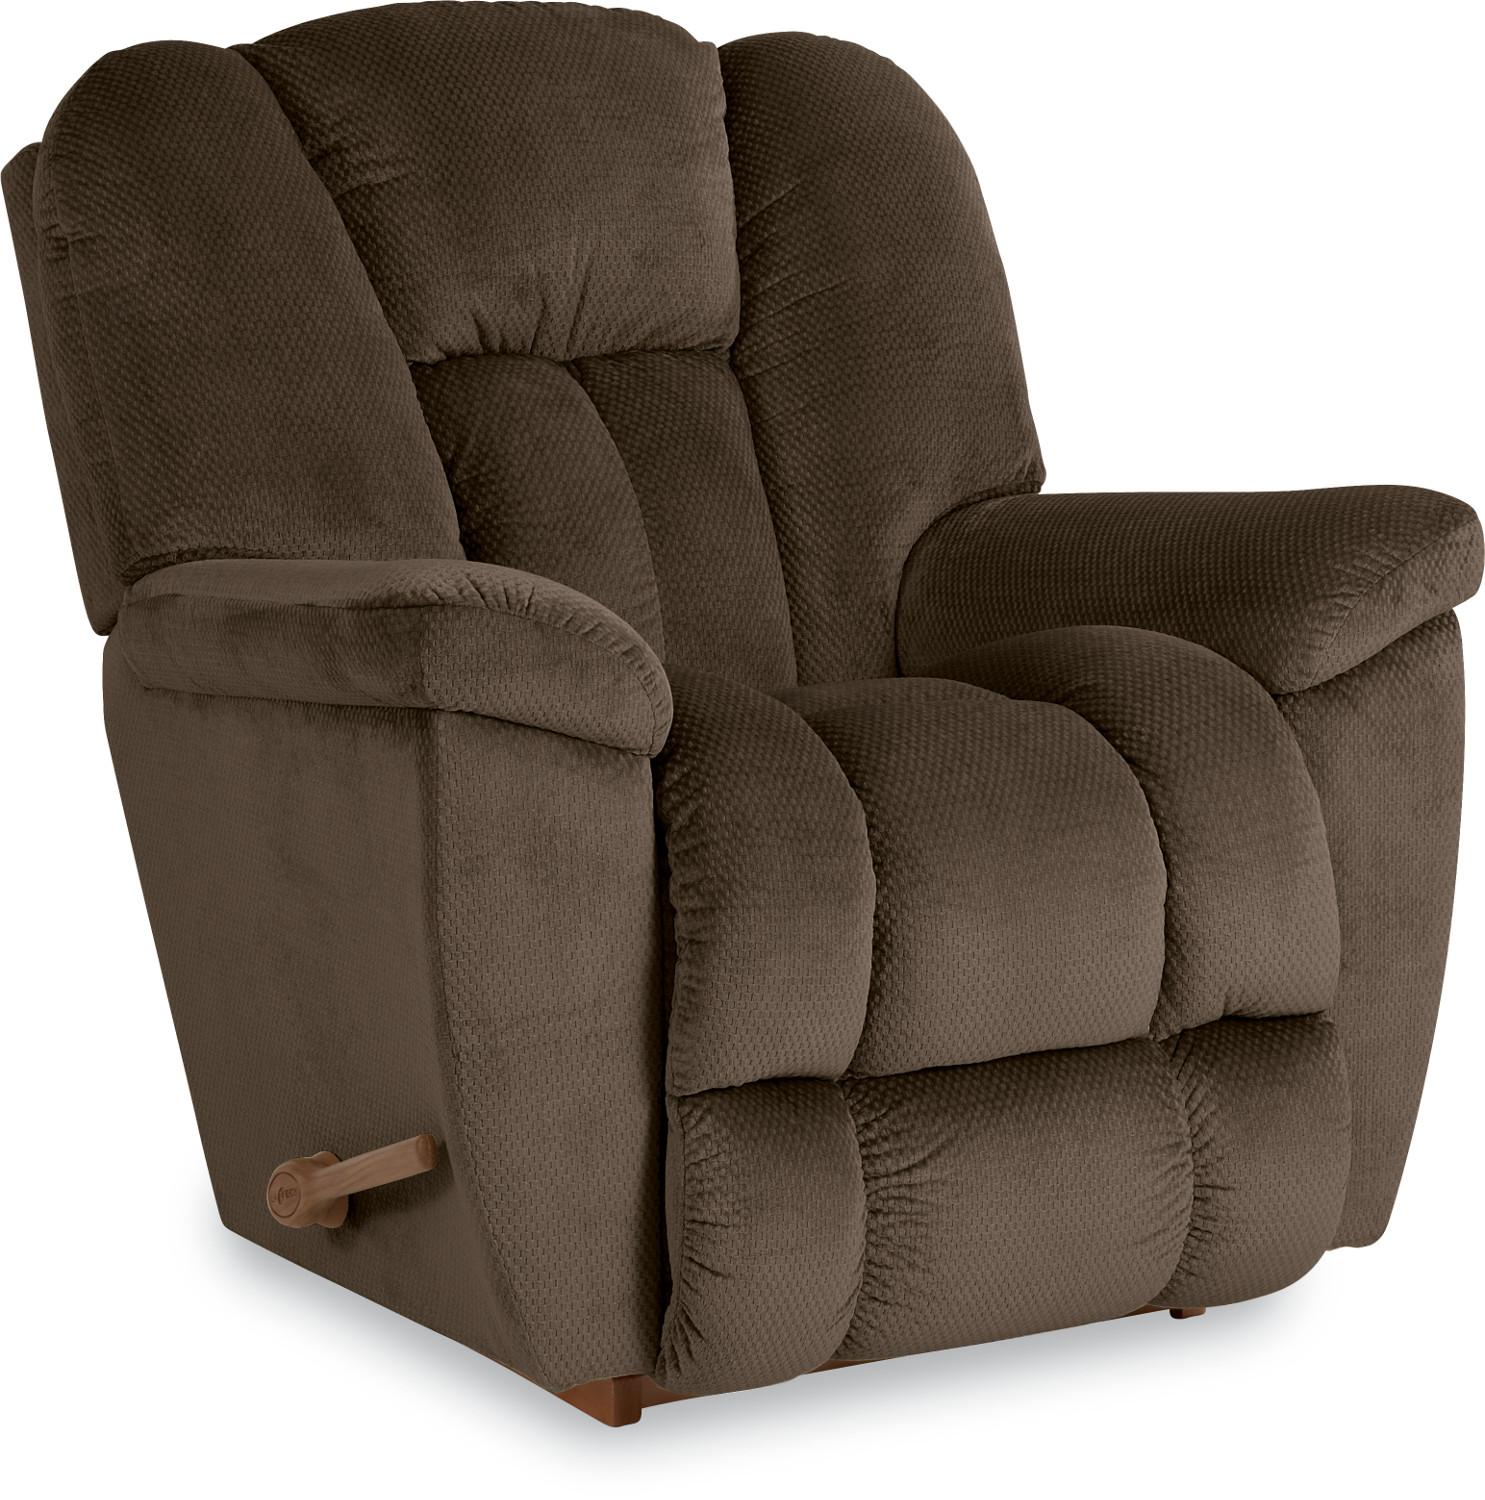 Maverick Reclina Way 174 Reclining Chair By La Z Boy Wolf